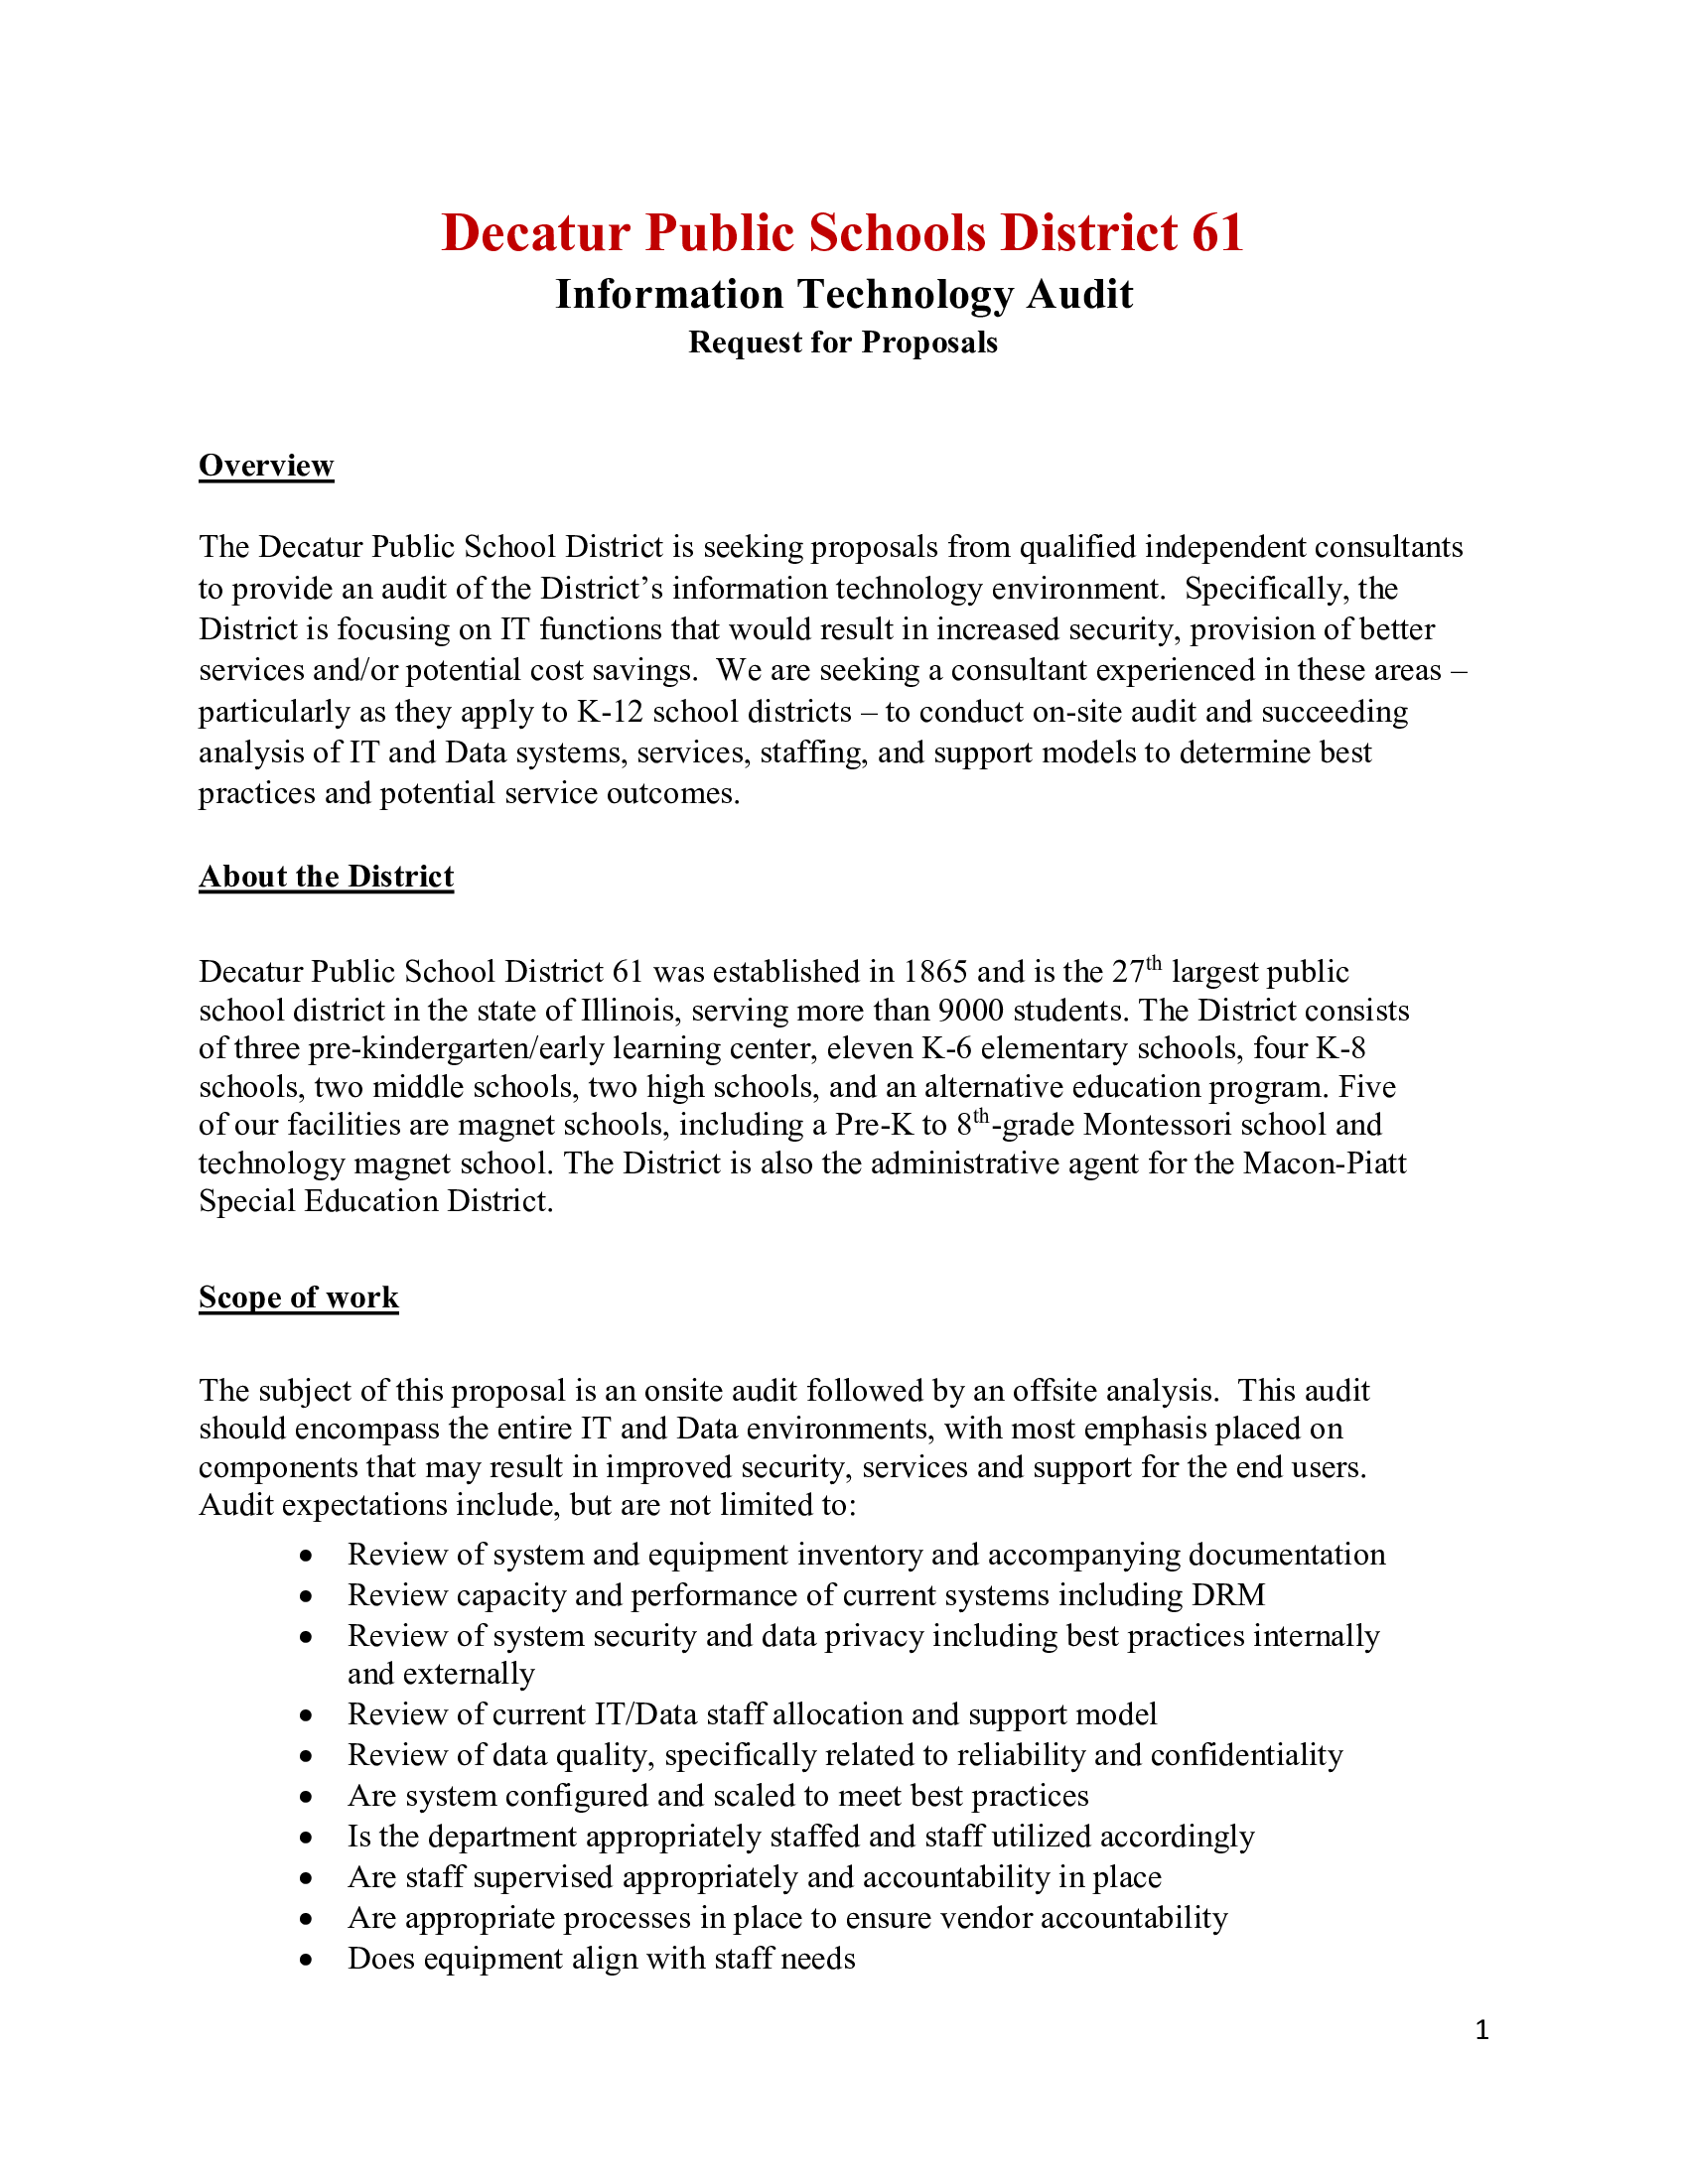 RFP for DPS 61 Technology & Processes Audit - Greater Decatur